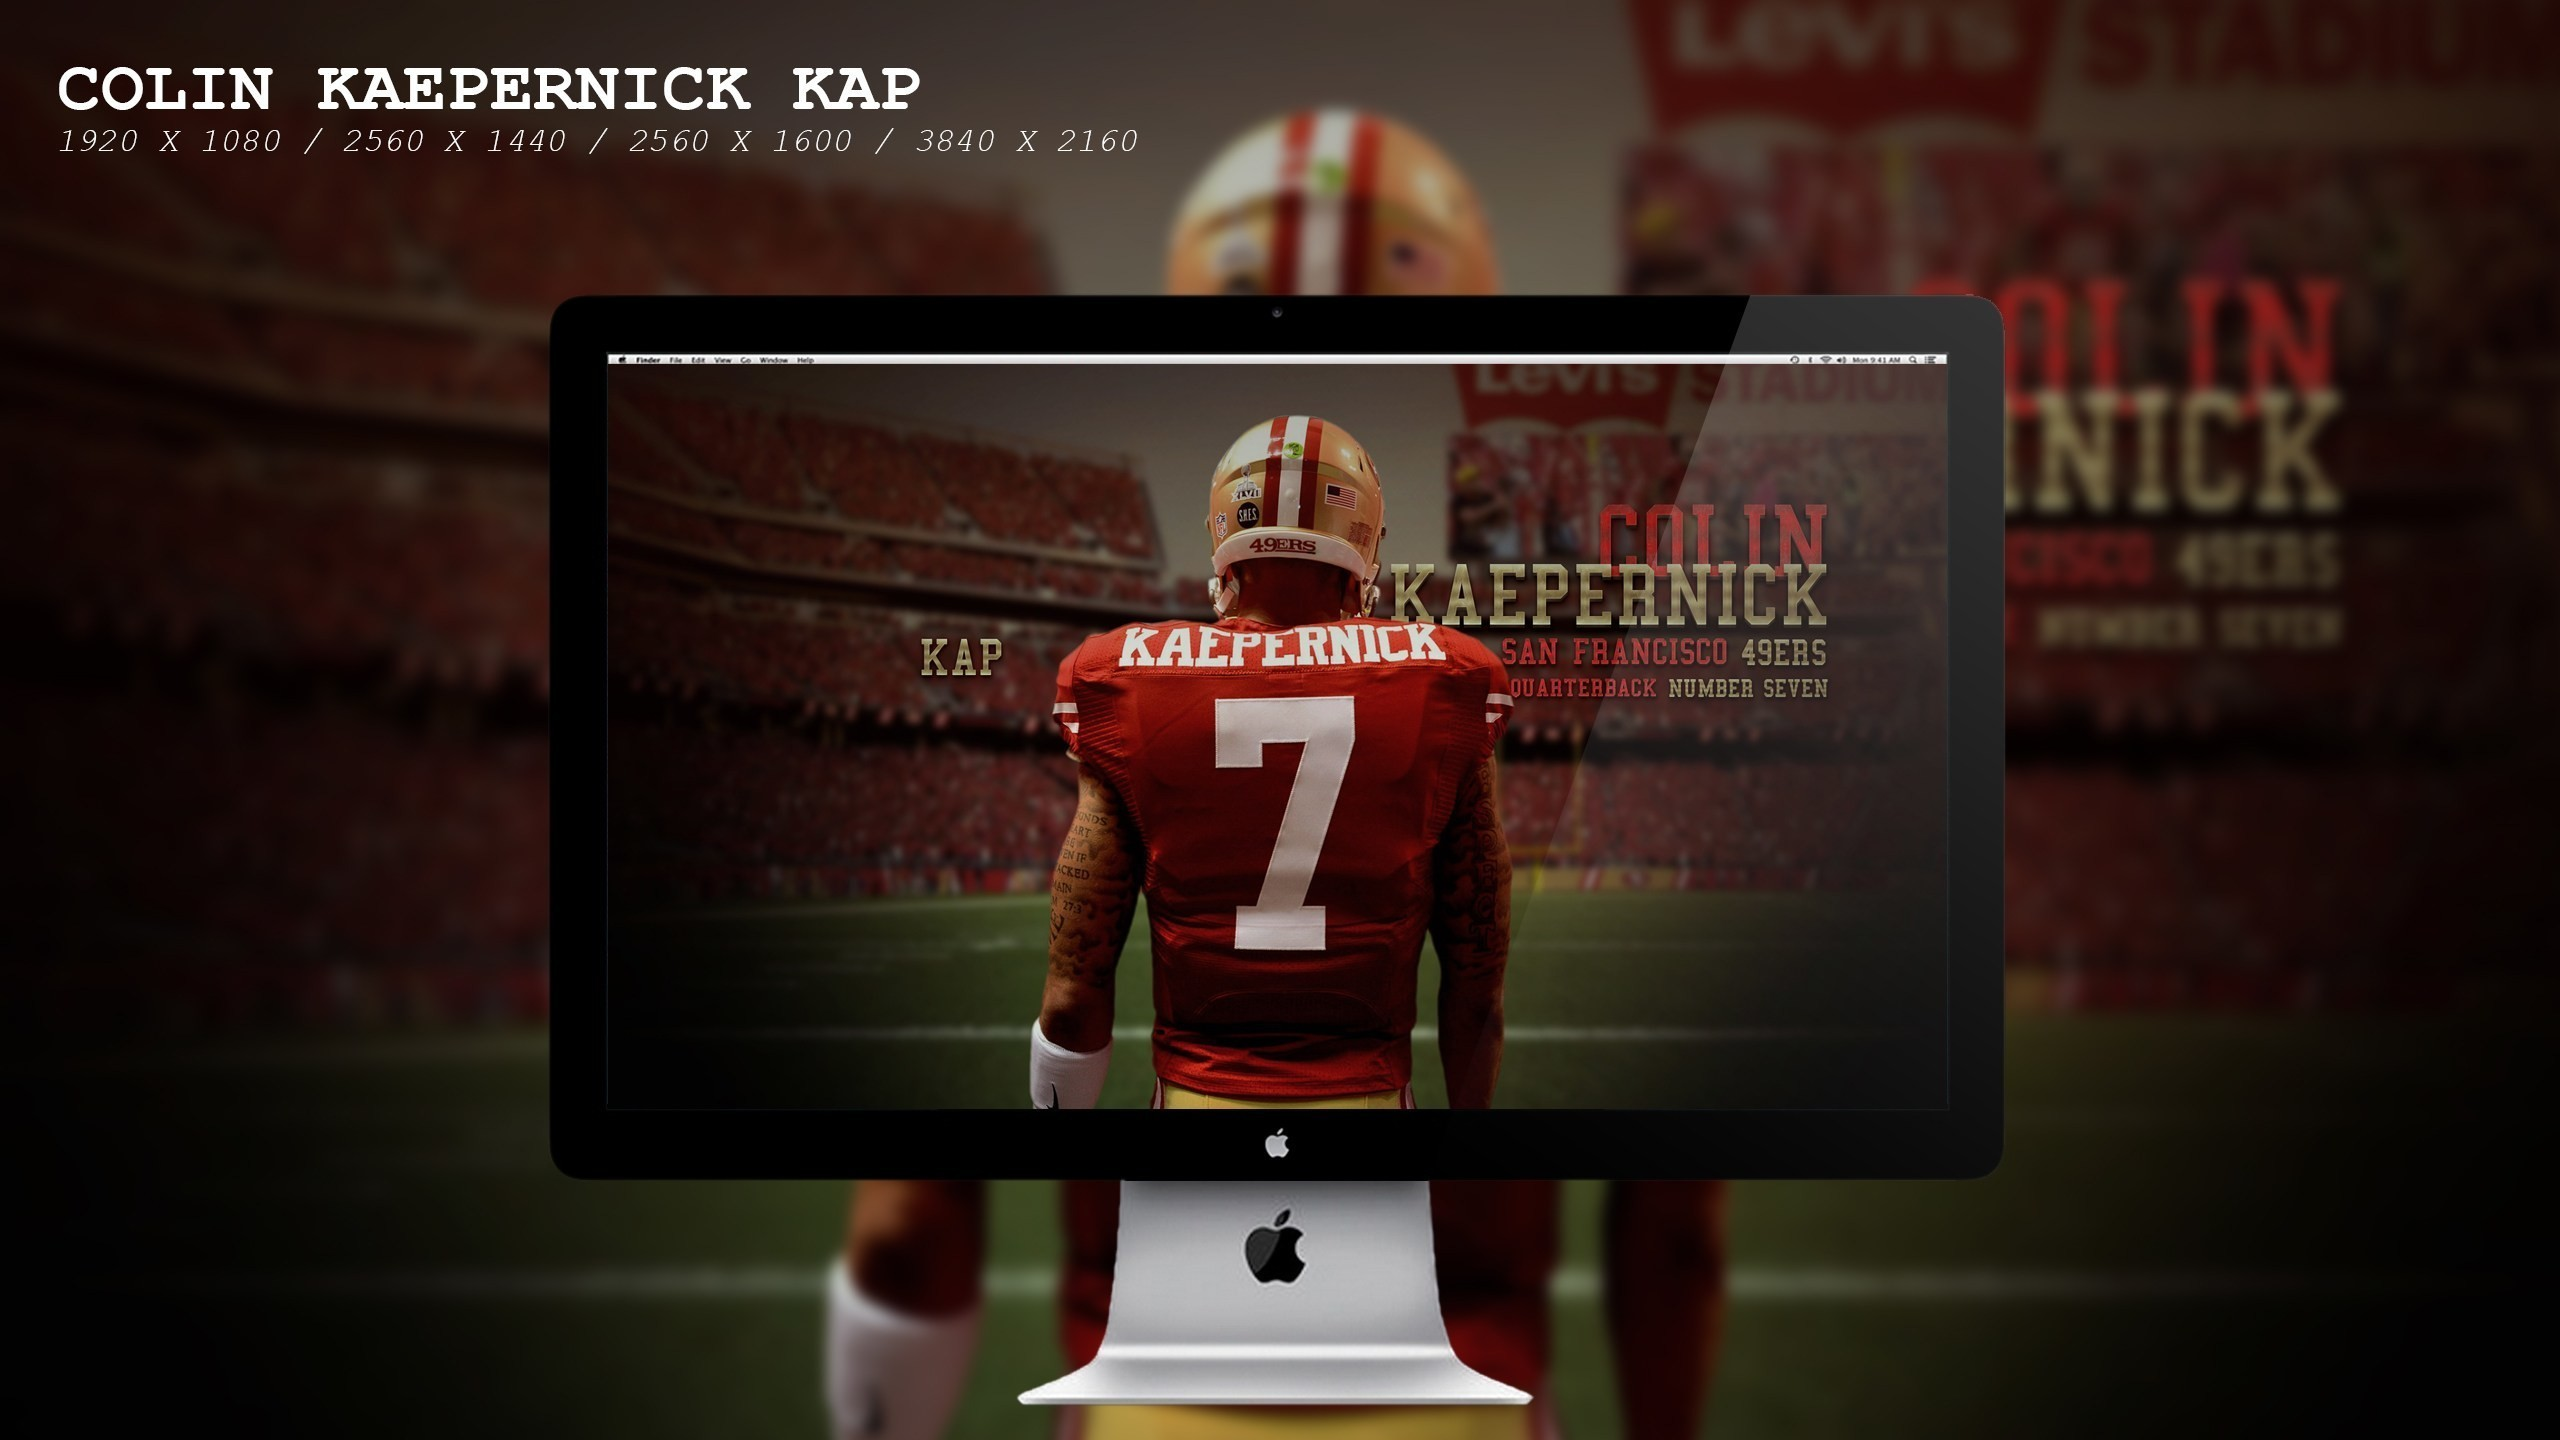 2560x1440 1920x1200 1920x1080 49ers wallpaper HD download1 (7)